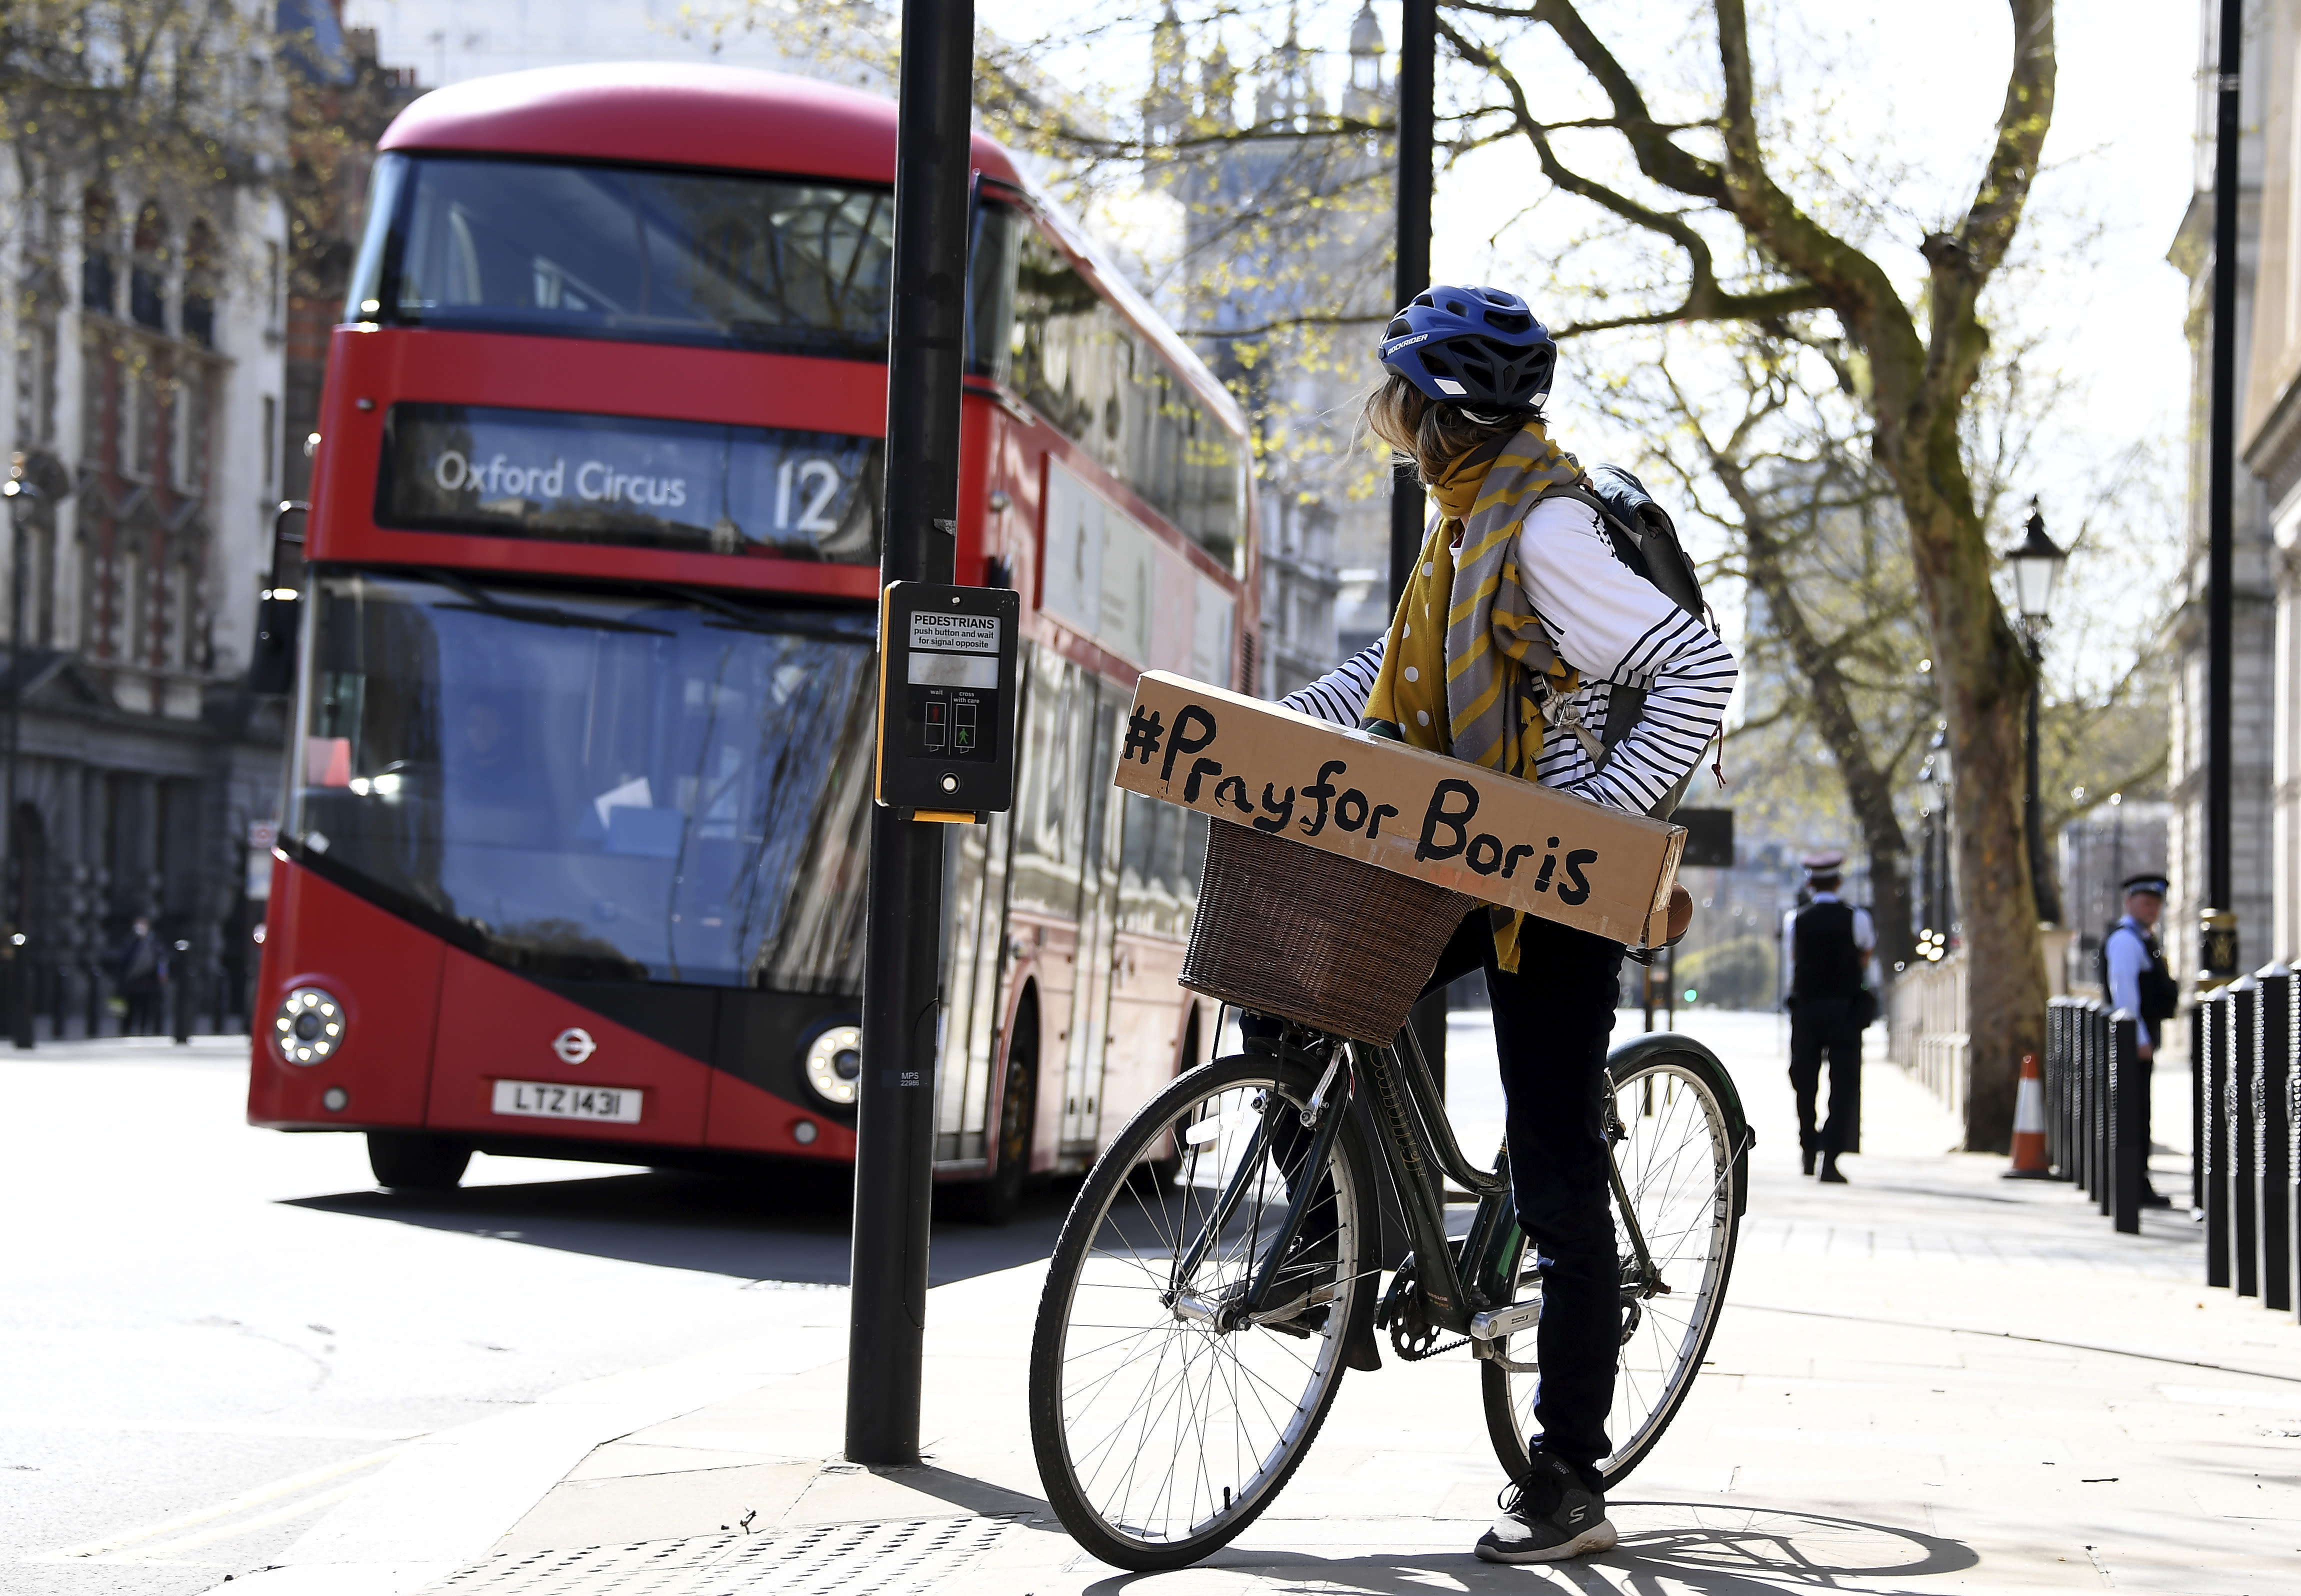 A woman shows a sign on her bicycle as British Prime Minister Boris Johnson is in intensive care fighting the coronavirus in London, Tuesday, April 7, 2020. Johnson was admitted to St Thomas' hospital in central London on Sunday after his coronavirus symptoms persisted for 10 days. Having been in hospital for tests and observation, his doctors advised that he be admitted to intensive care on Monday evening. The new coronavirus causes mild or moderate symptoms for most people, but for some, especially older adults and people with existing health problems, it can cause more severe illness or death.(AP Photo/Alberto Pezzali)